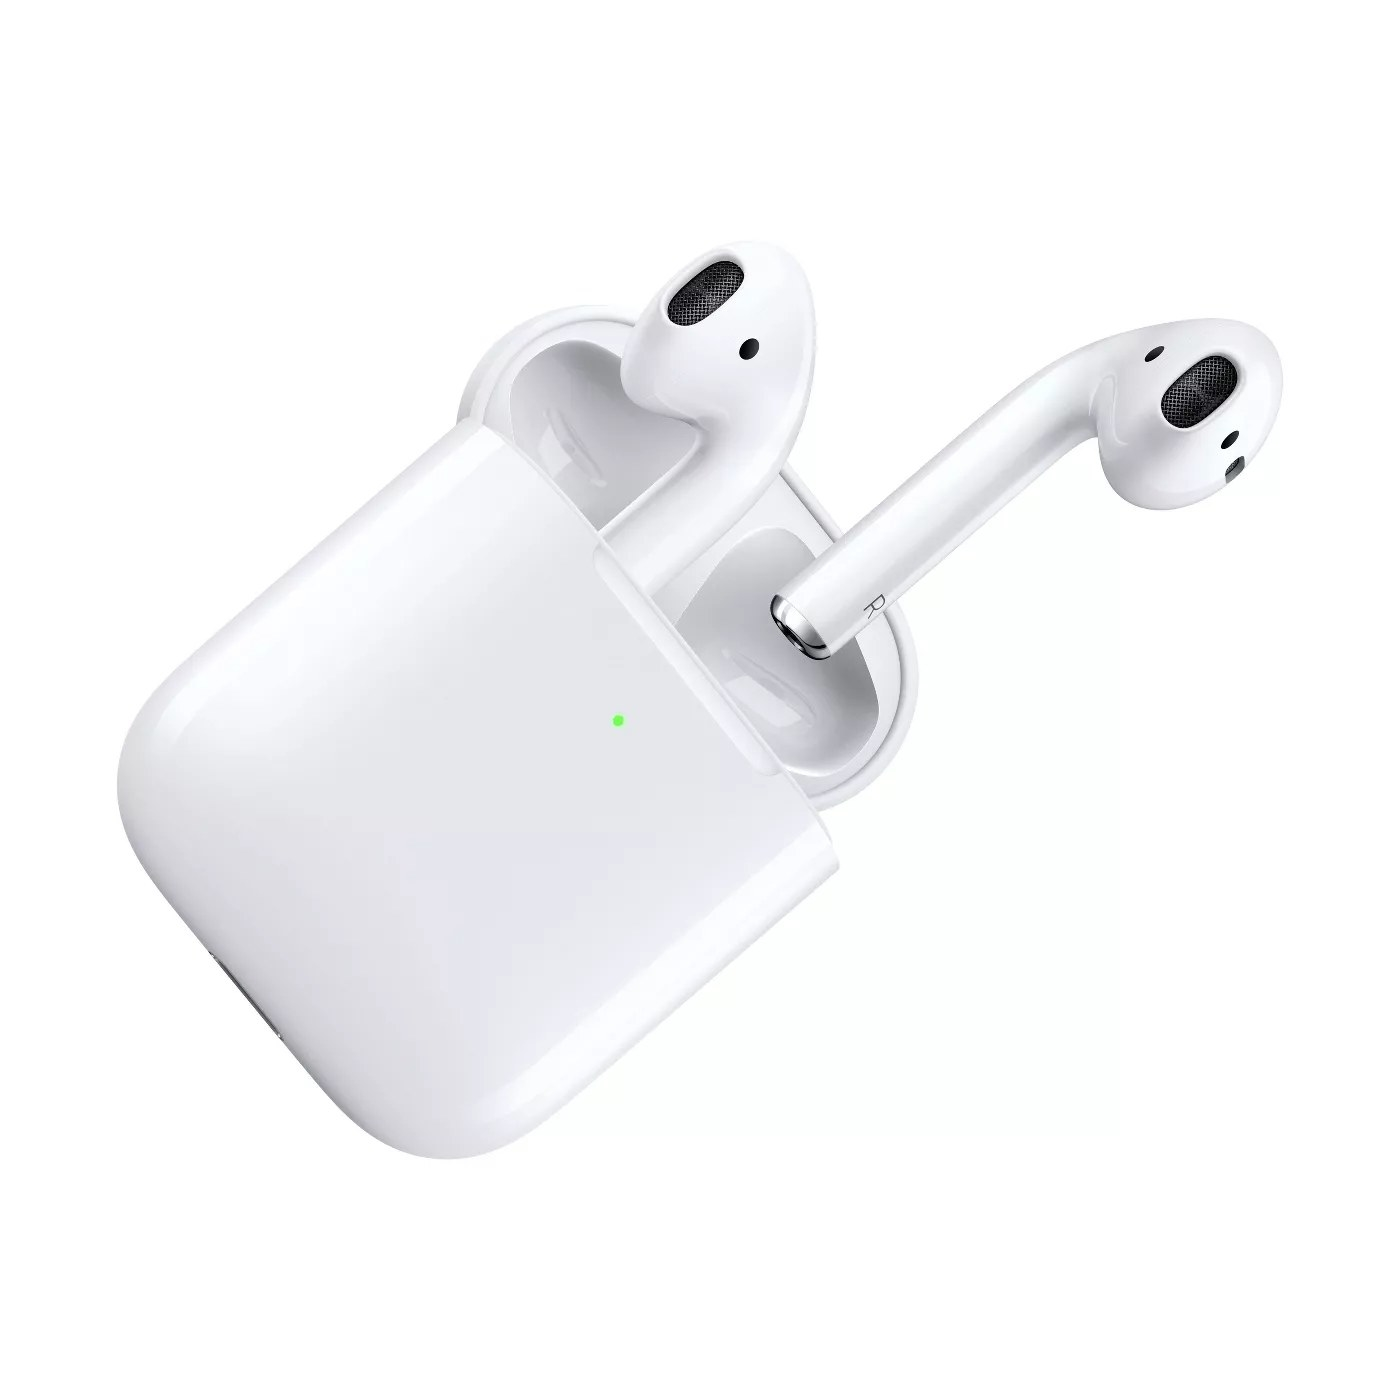 The AirPods in the charging case